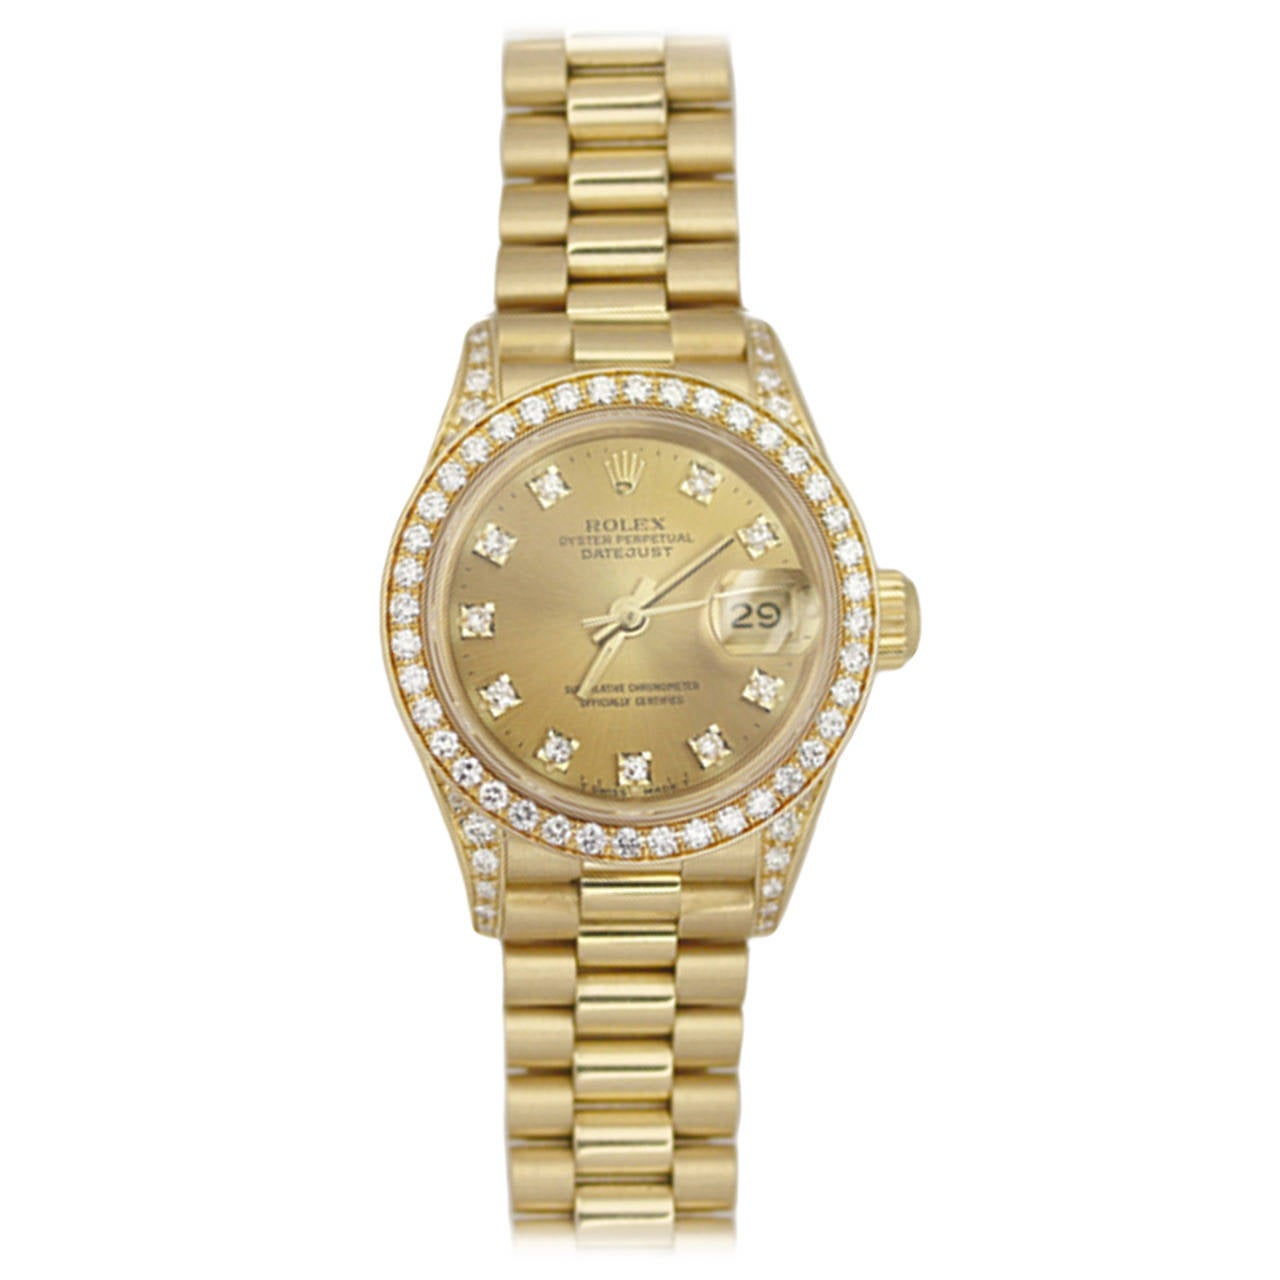 Rolex datejust oyster perpetual women